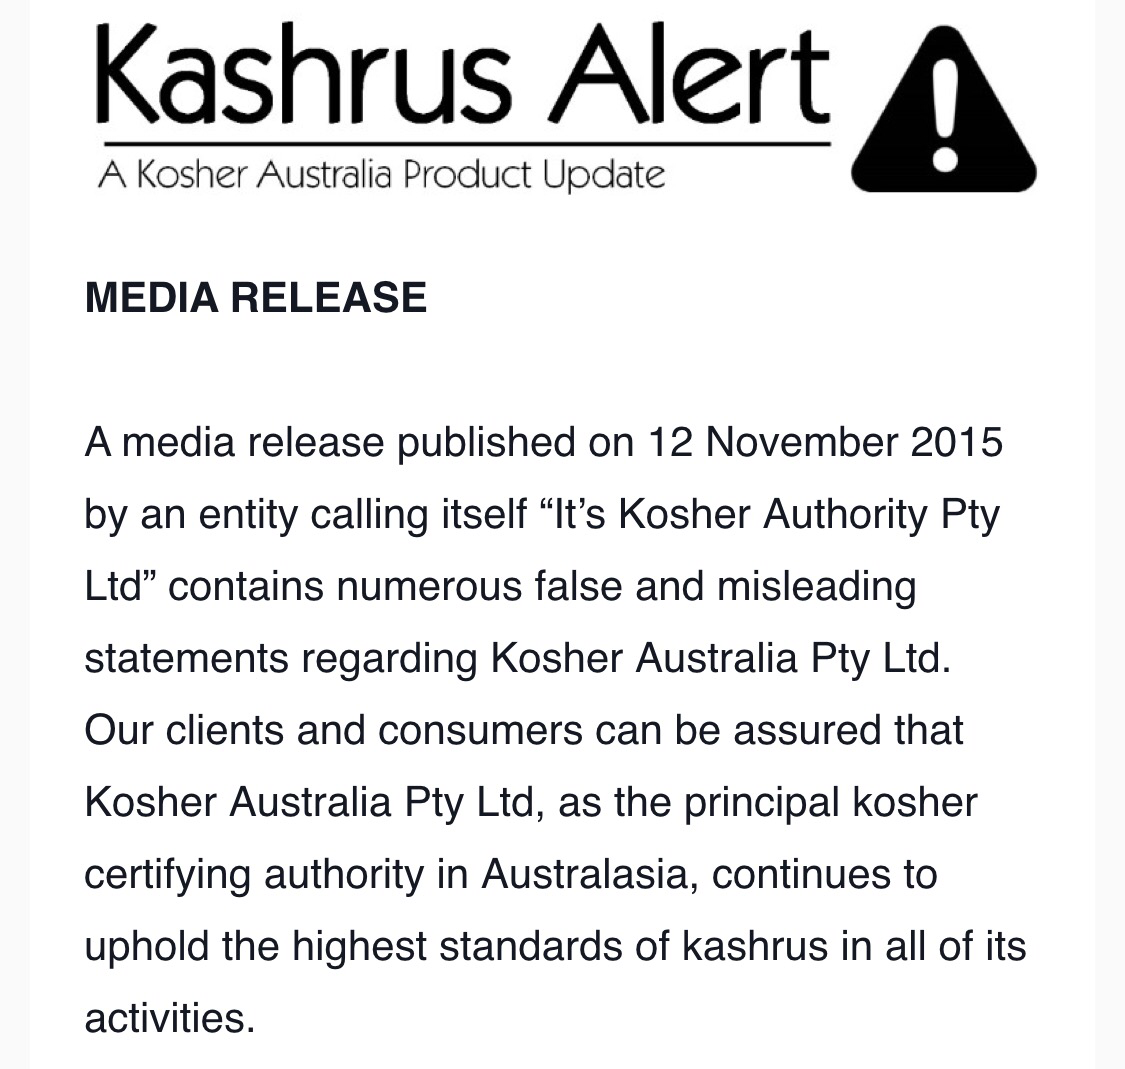 Kosher australia pitputim its triangle k in the states all over except ralbag is far more respected yet also not accepted by rov minyan and binyan of frum kosher consumers and biocorpaavc